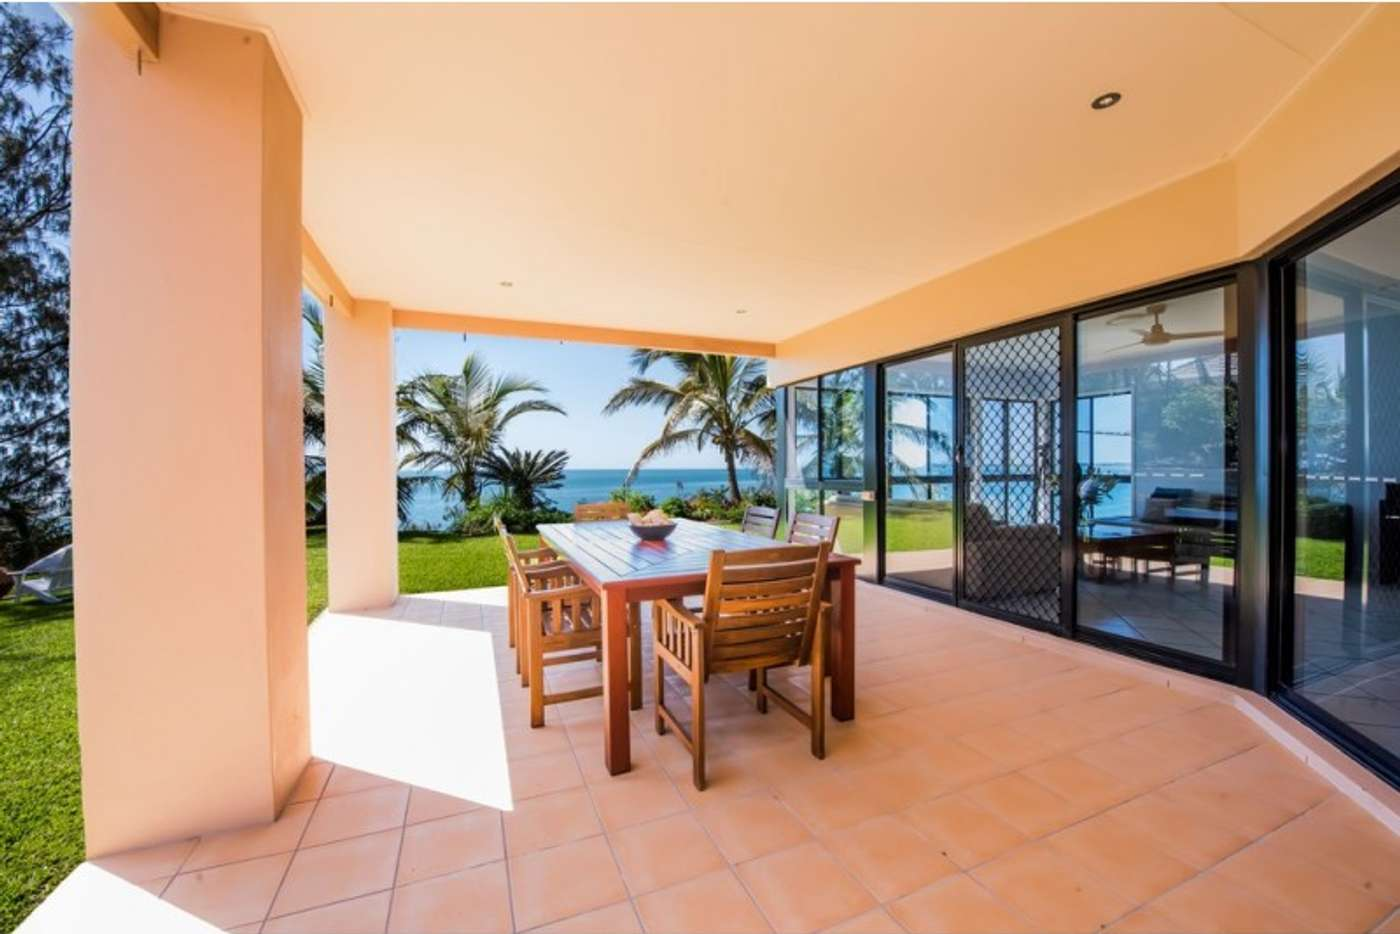 Seventh view of Homely house listing, 60 Admiral Drive, Dolphin Heads QLD 4740